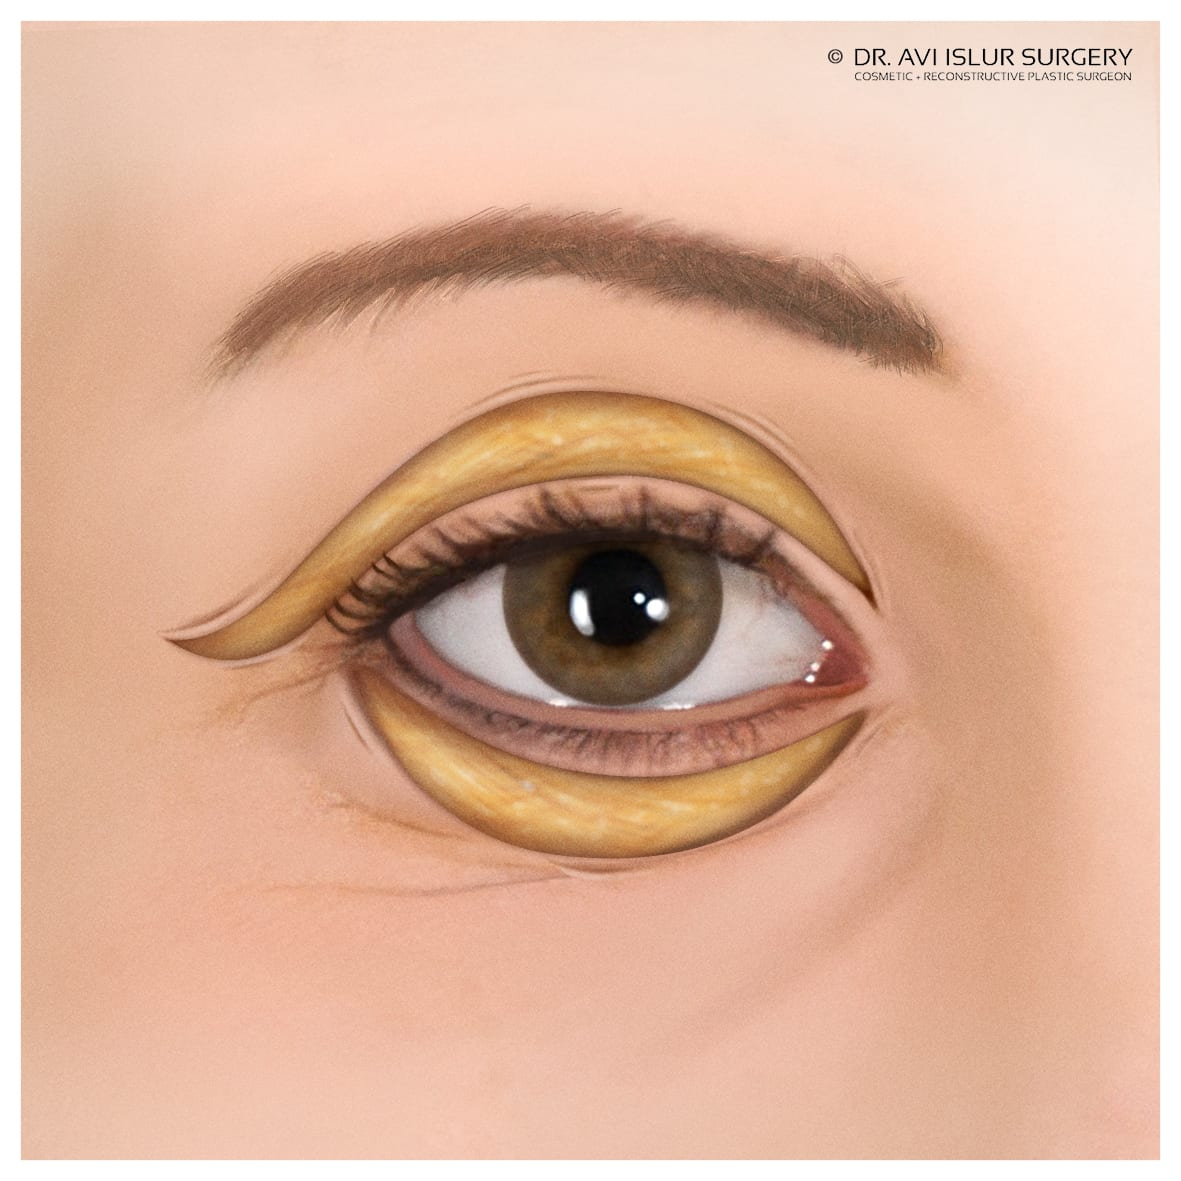 eyelid surgery fat removal illustration